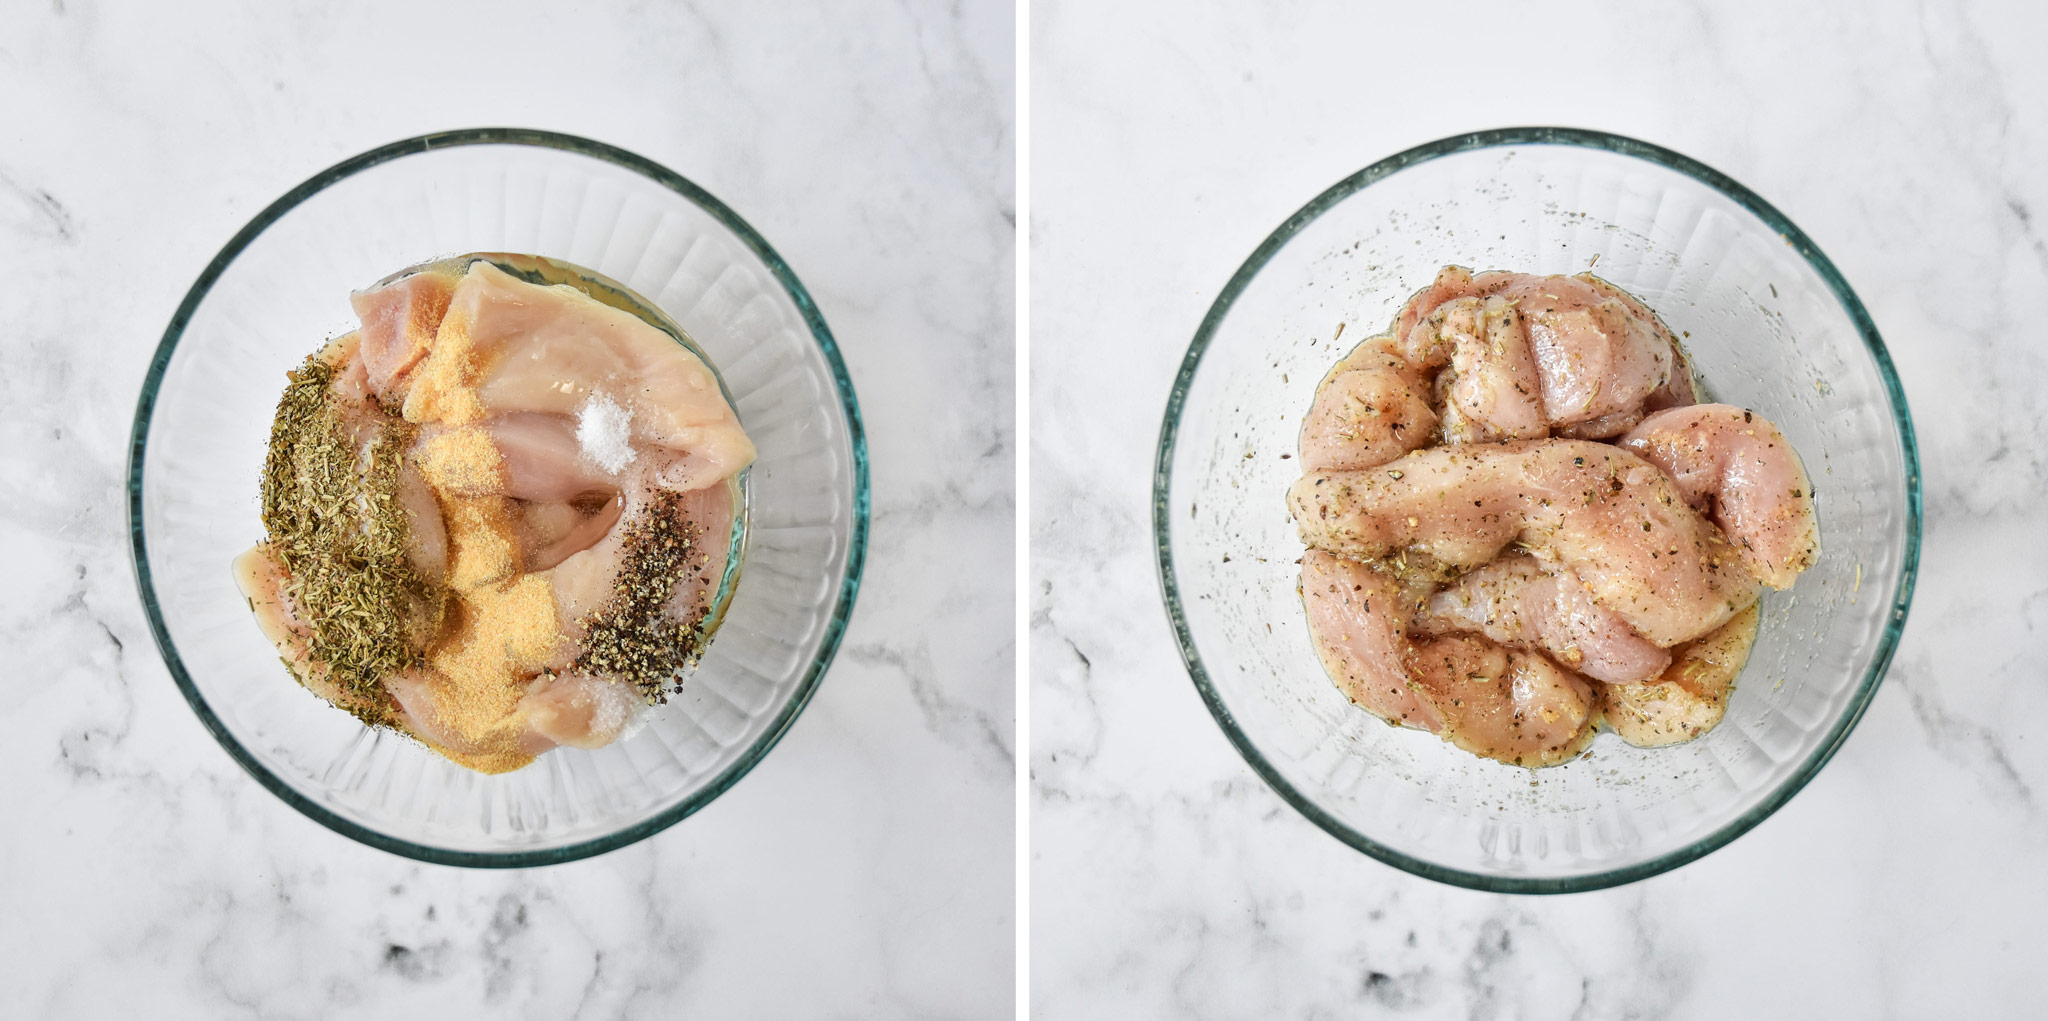 before and after mixing the ingredients to marinate the air fryer chicken tenders.